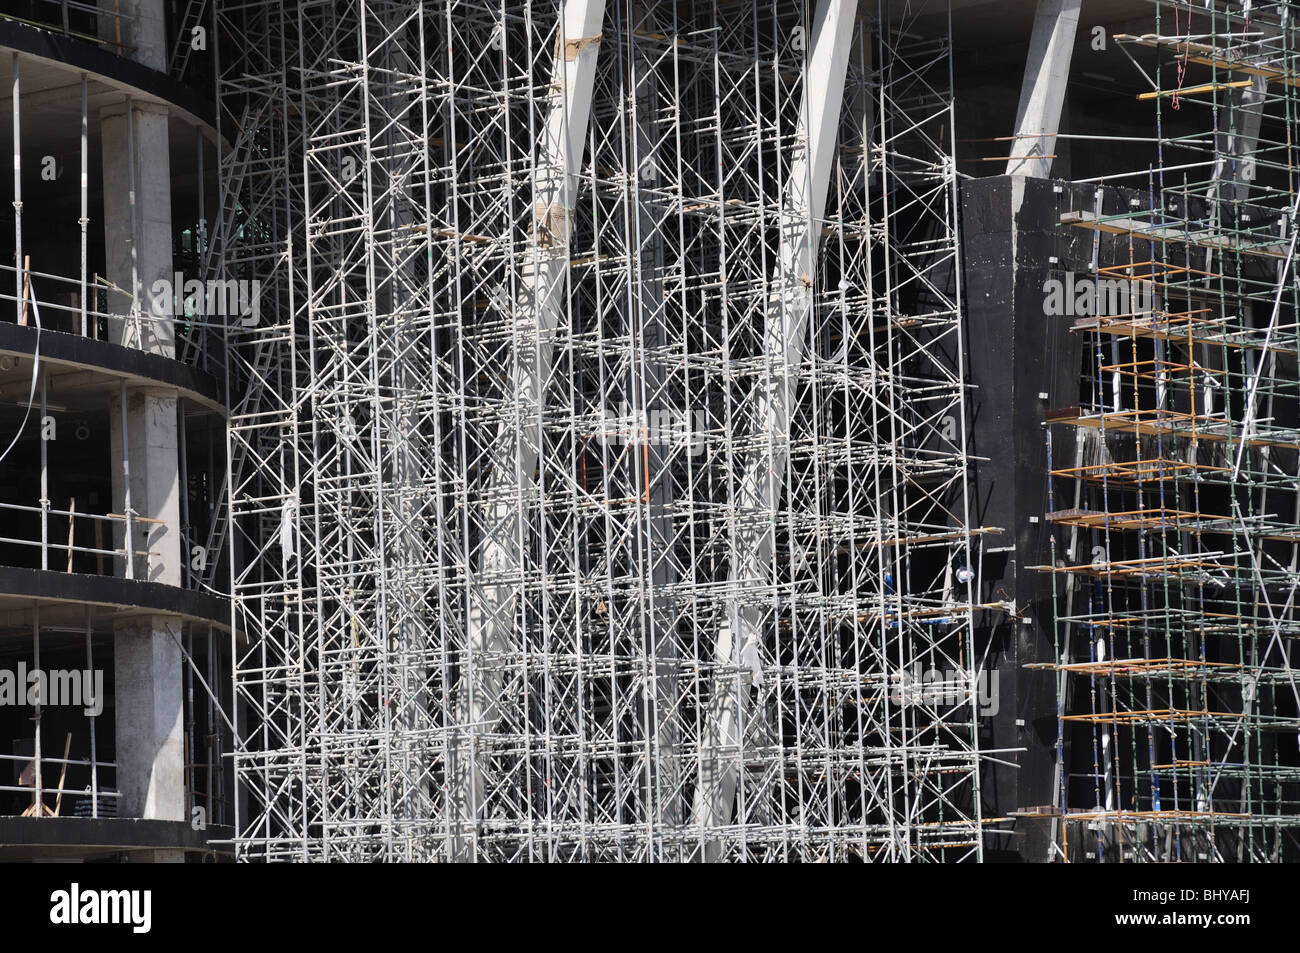 Scaffolding construction at new apartment building - Stock Image